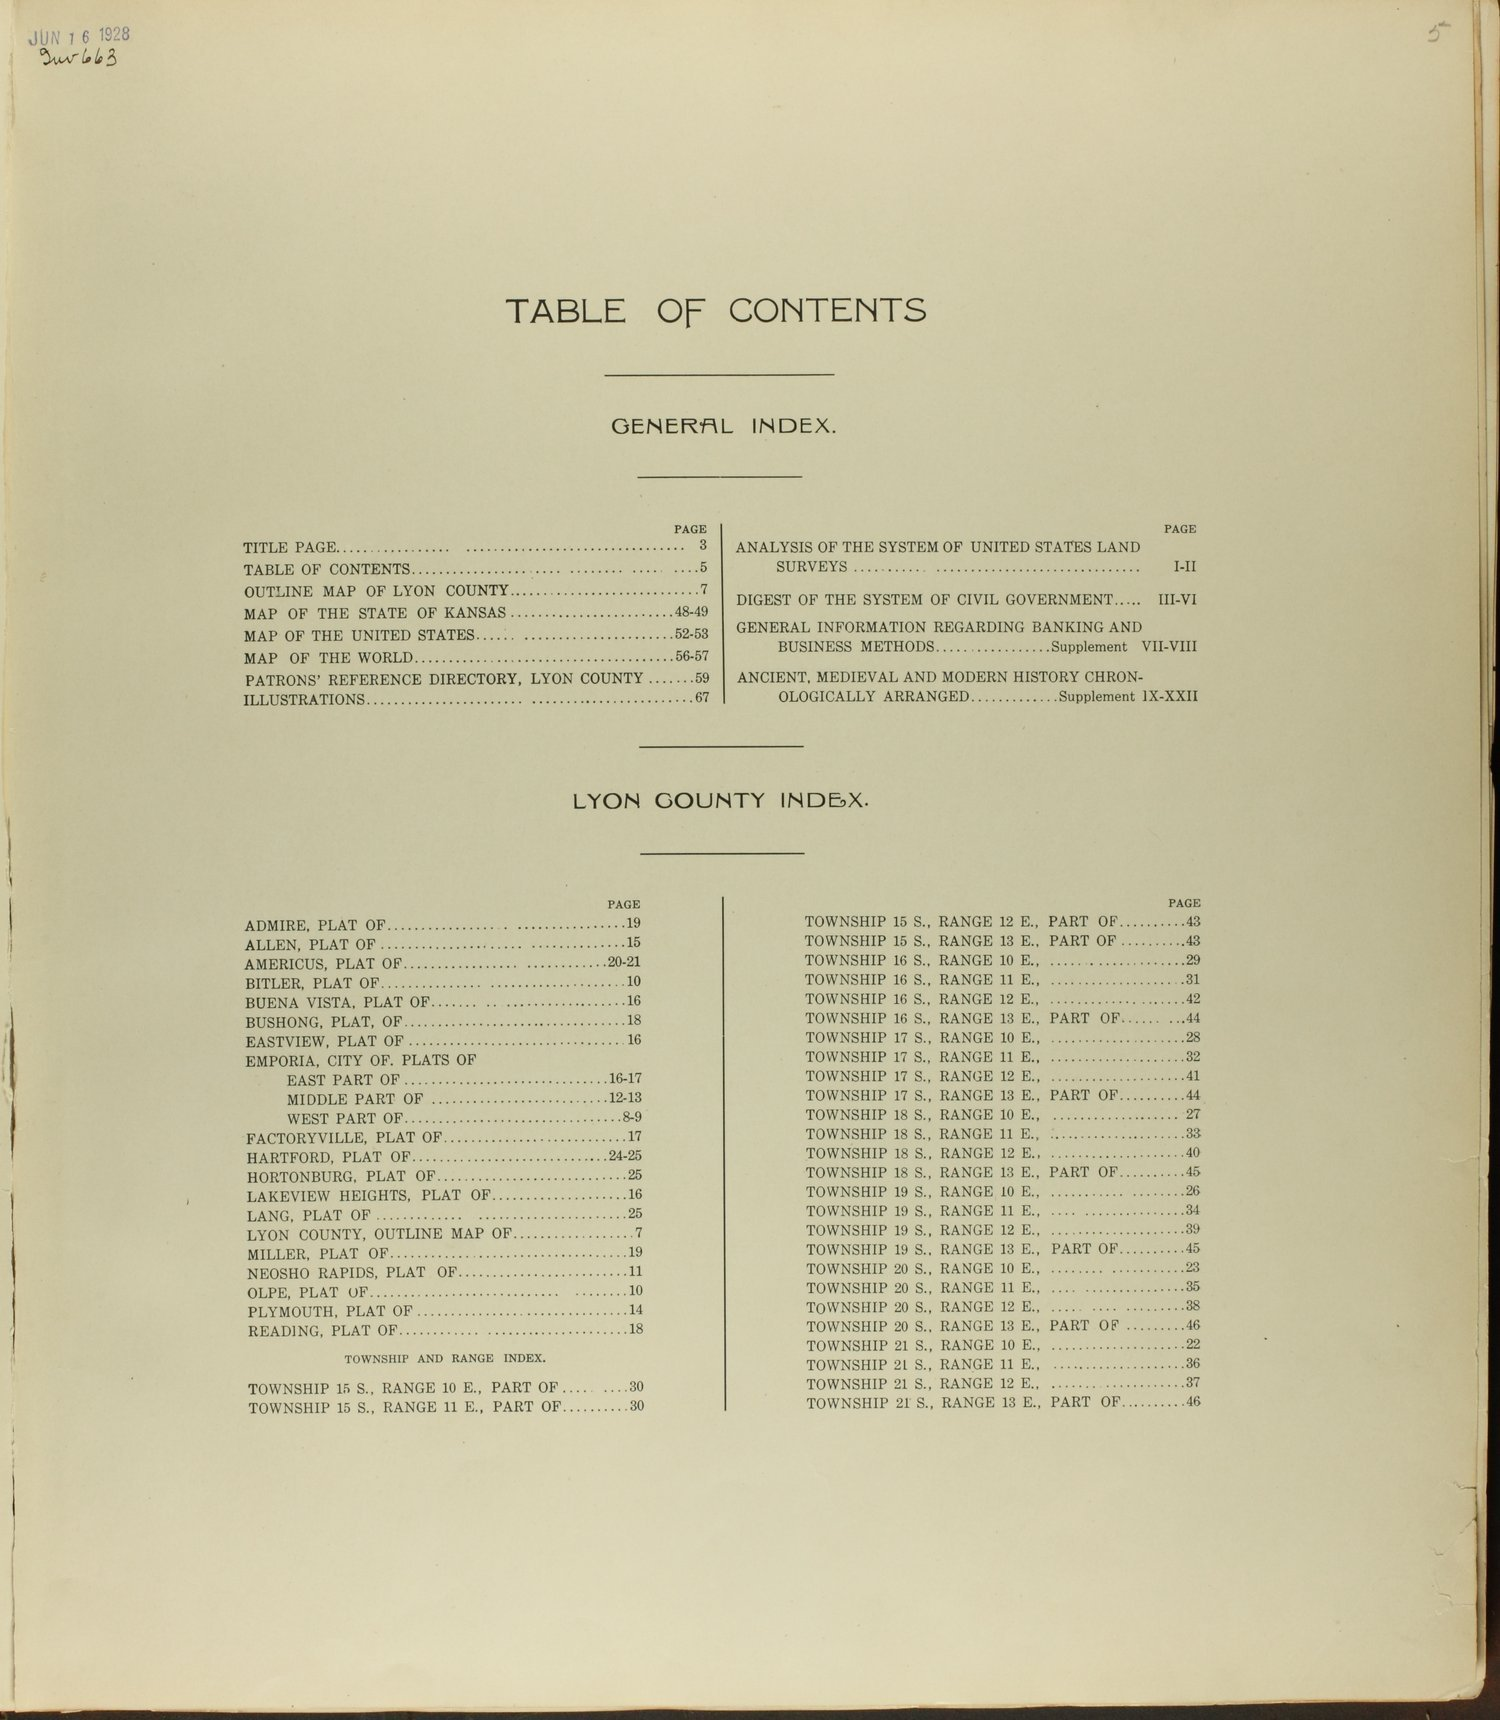 Standard atlas of Lyon County, Kansas - Table of Contents